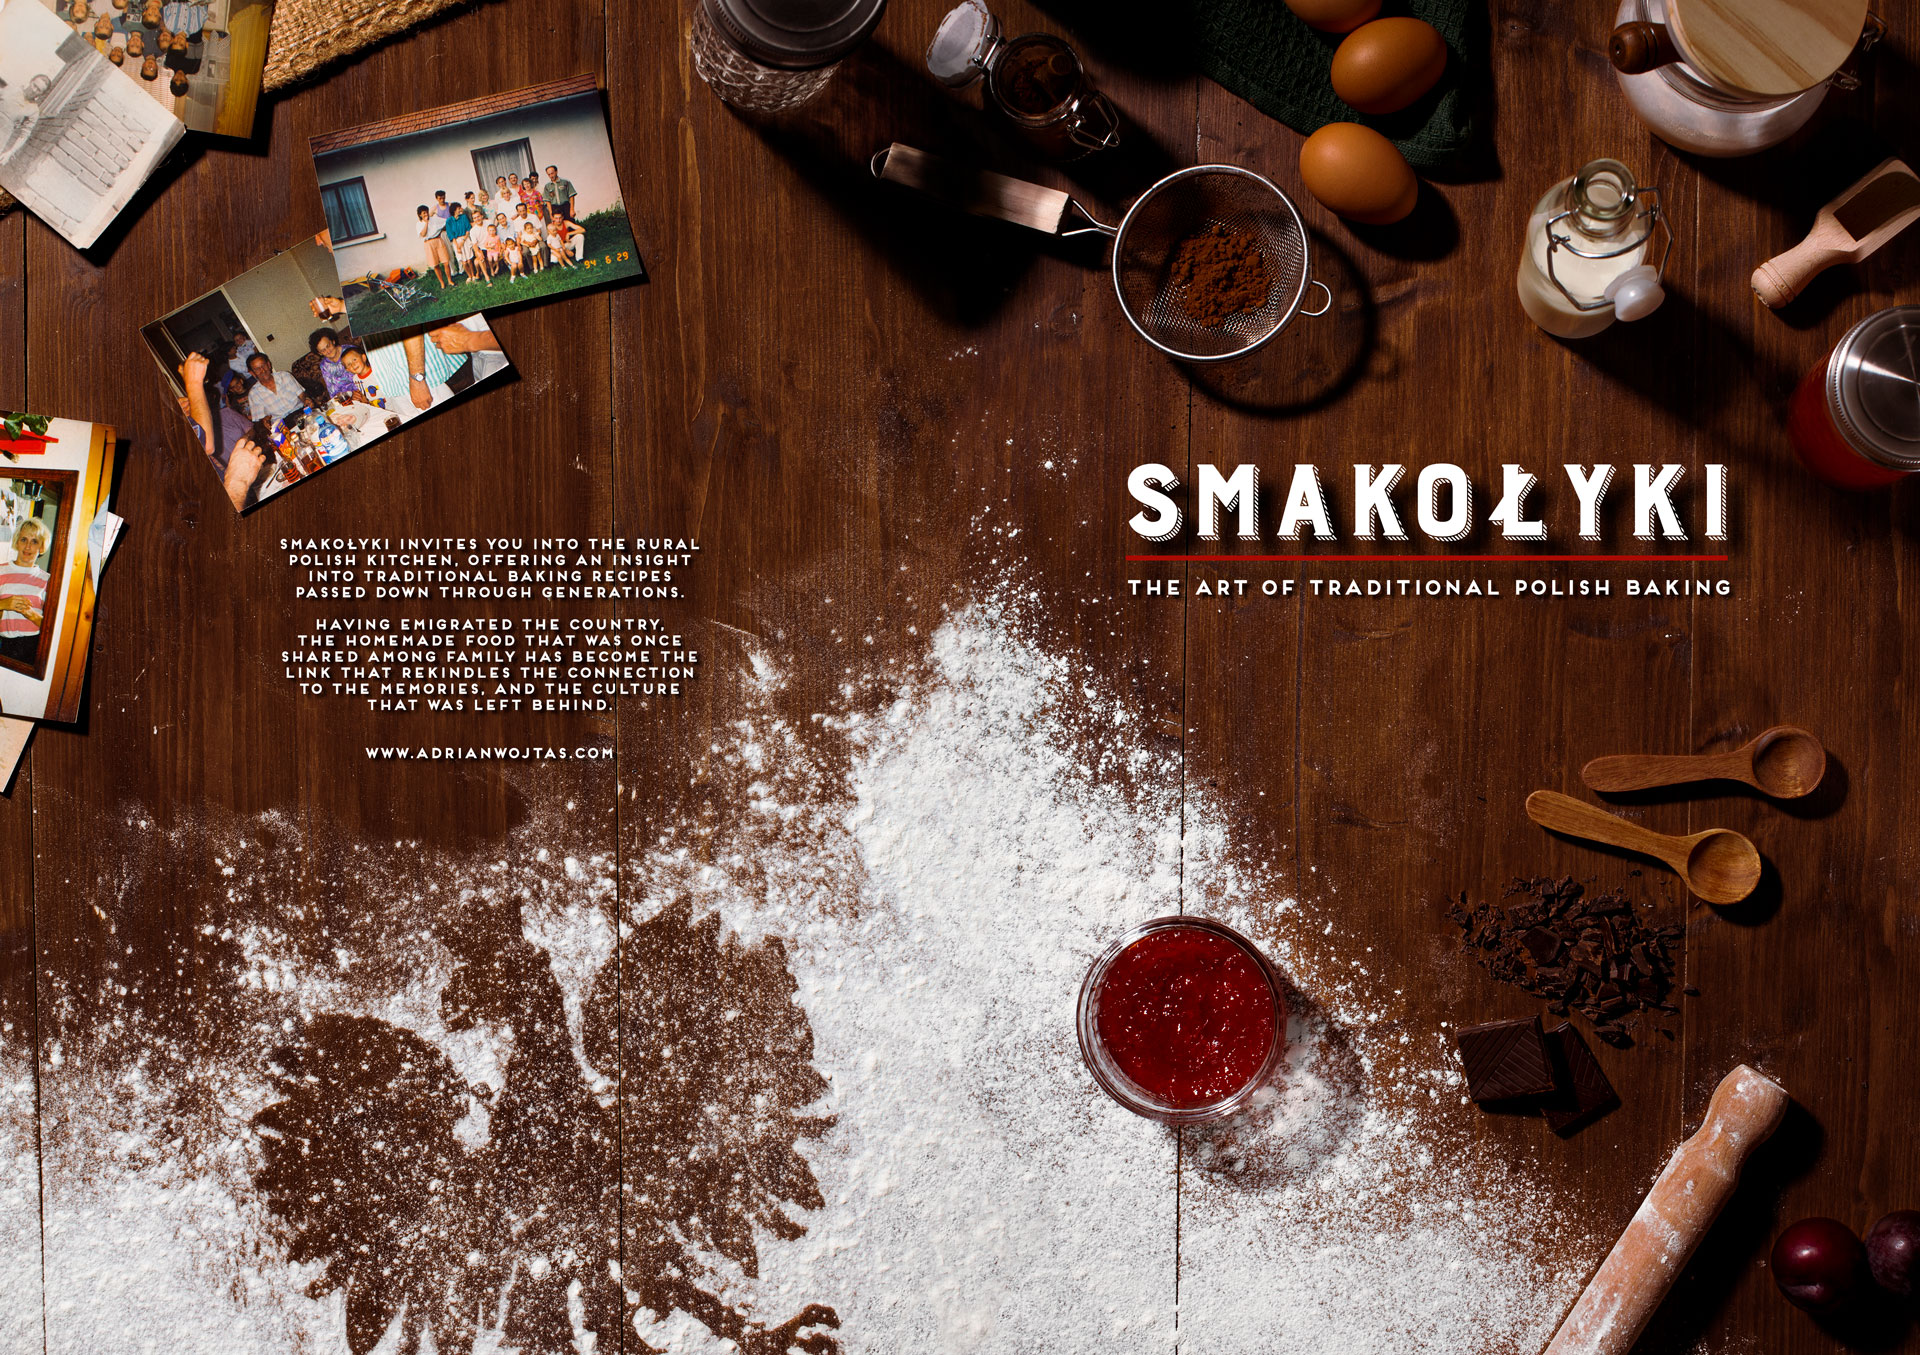 smakolyki-the-art-of-traditional-polish-baking_adrian-wojtas_cover